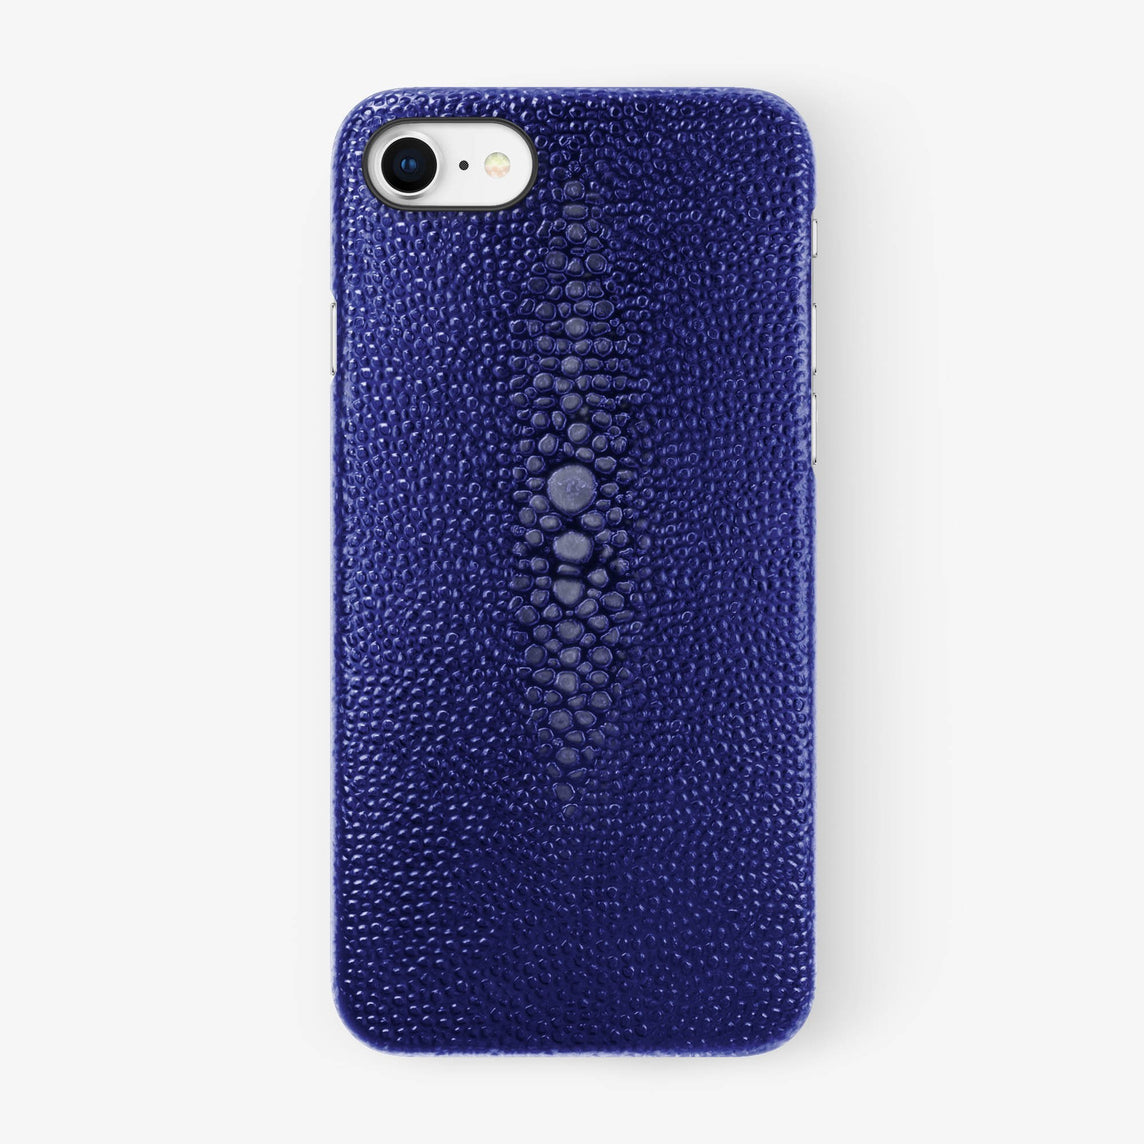 Stingray Case iPhone 7/8 | Blue - Black